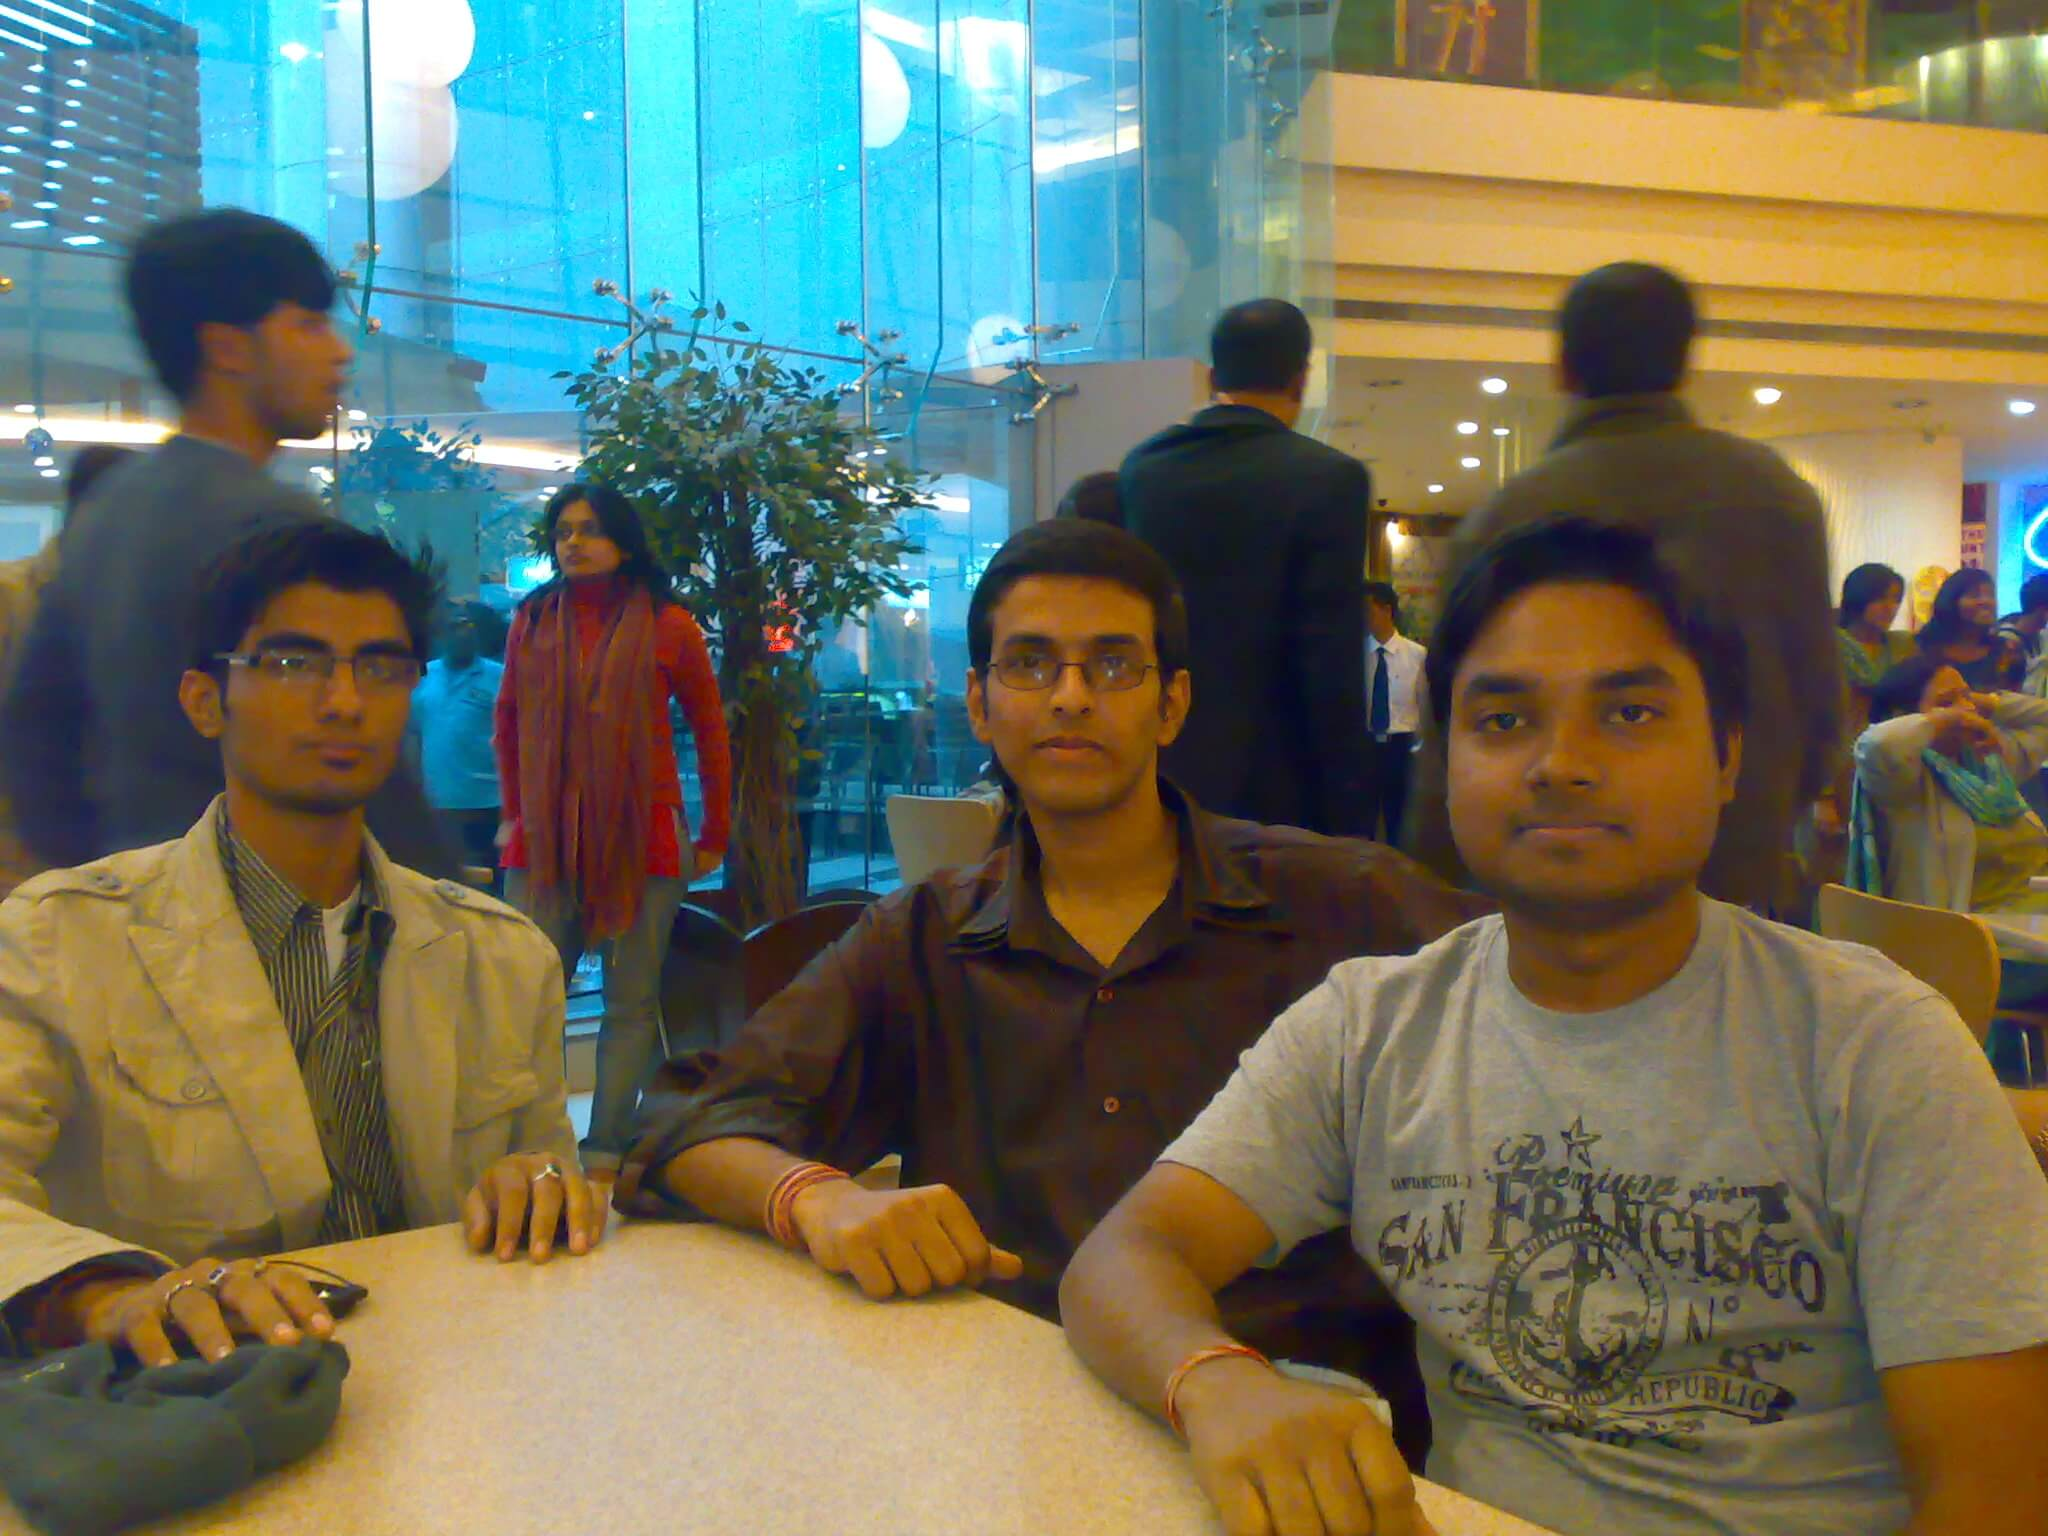 31st December 2009, Kolkata Tweetup, Manisquare Mall Where I first met Anirban